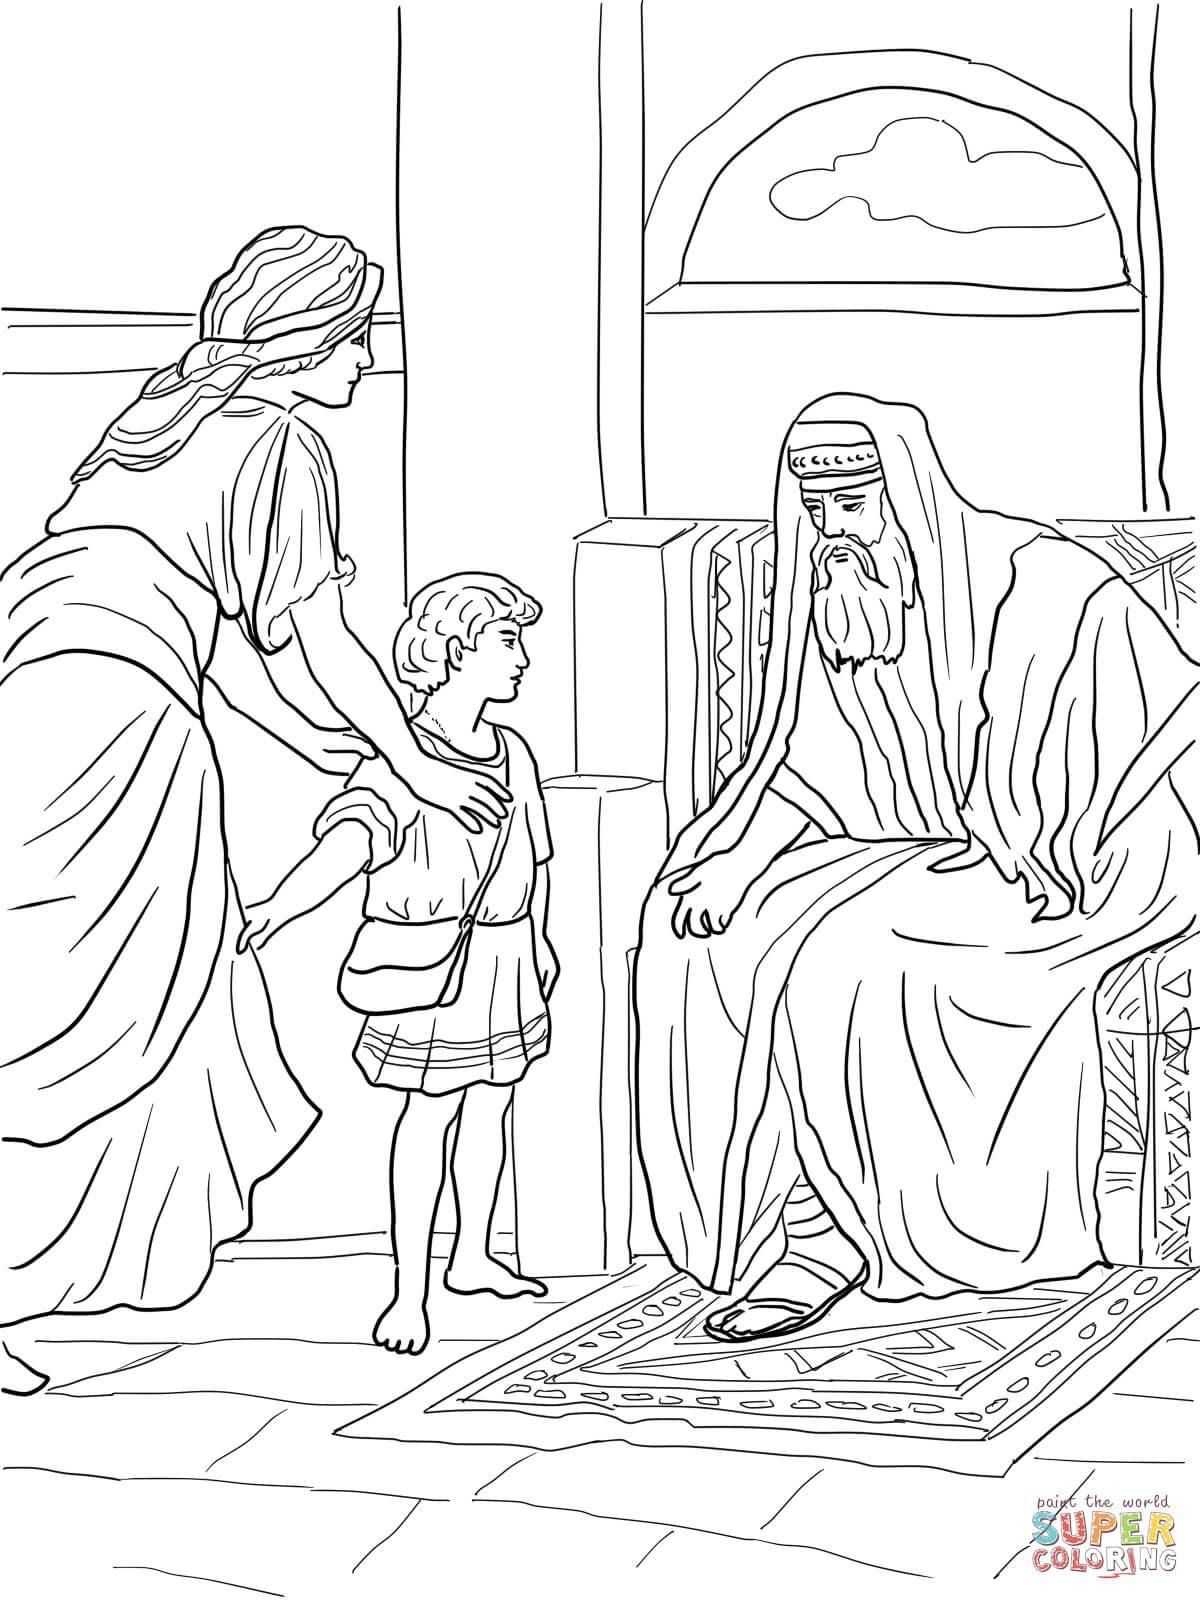 Pin by Alice on childrens sunday school | Bible coloring ...